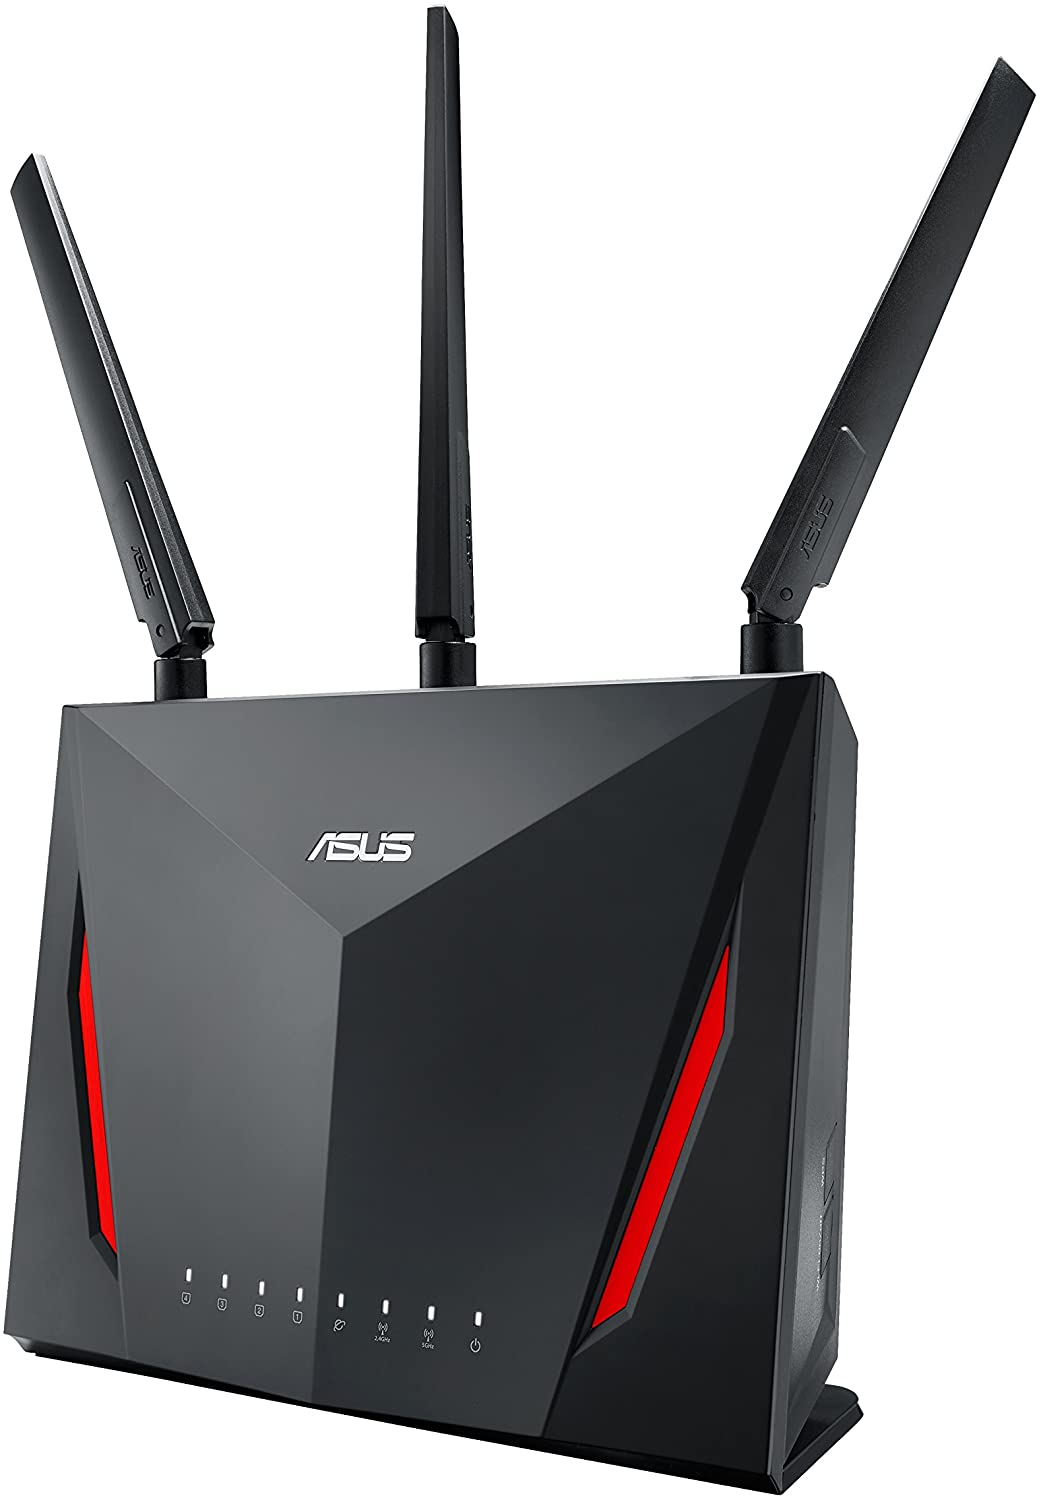 ASUS RT-AC86U WIFI AC2900 ROUTER